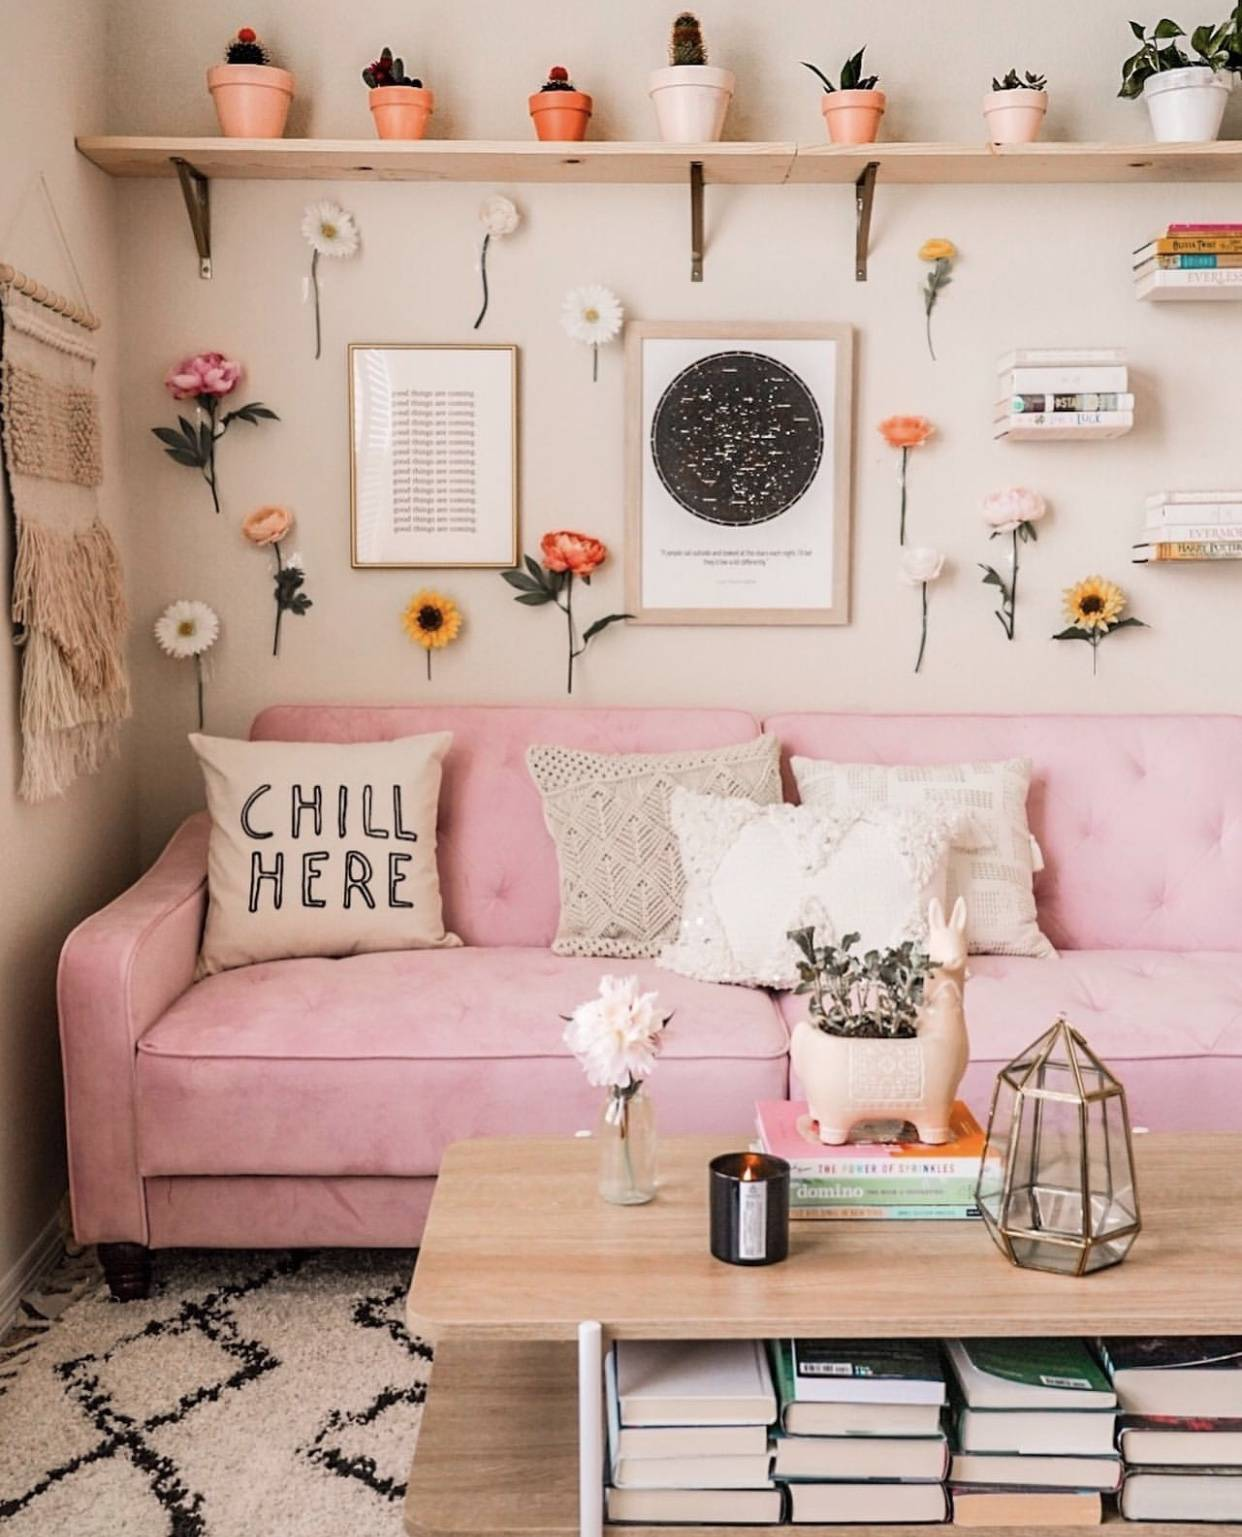 Excellent Vsco Room Ideas How To Create A Cute Vsco Room The Pink Dream Unemploymentrelief Wooden Chair Designs For Living Room Unemploymentrelieforg